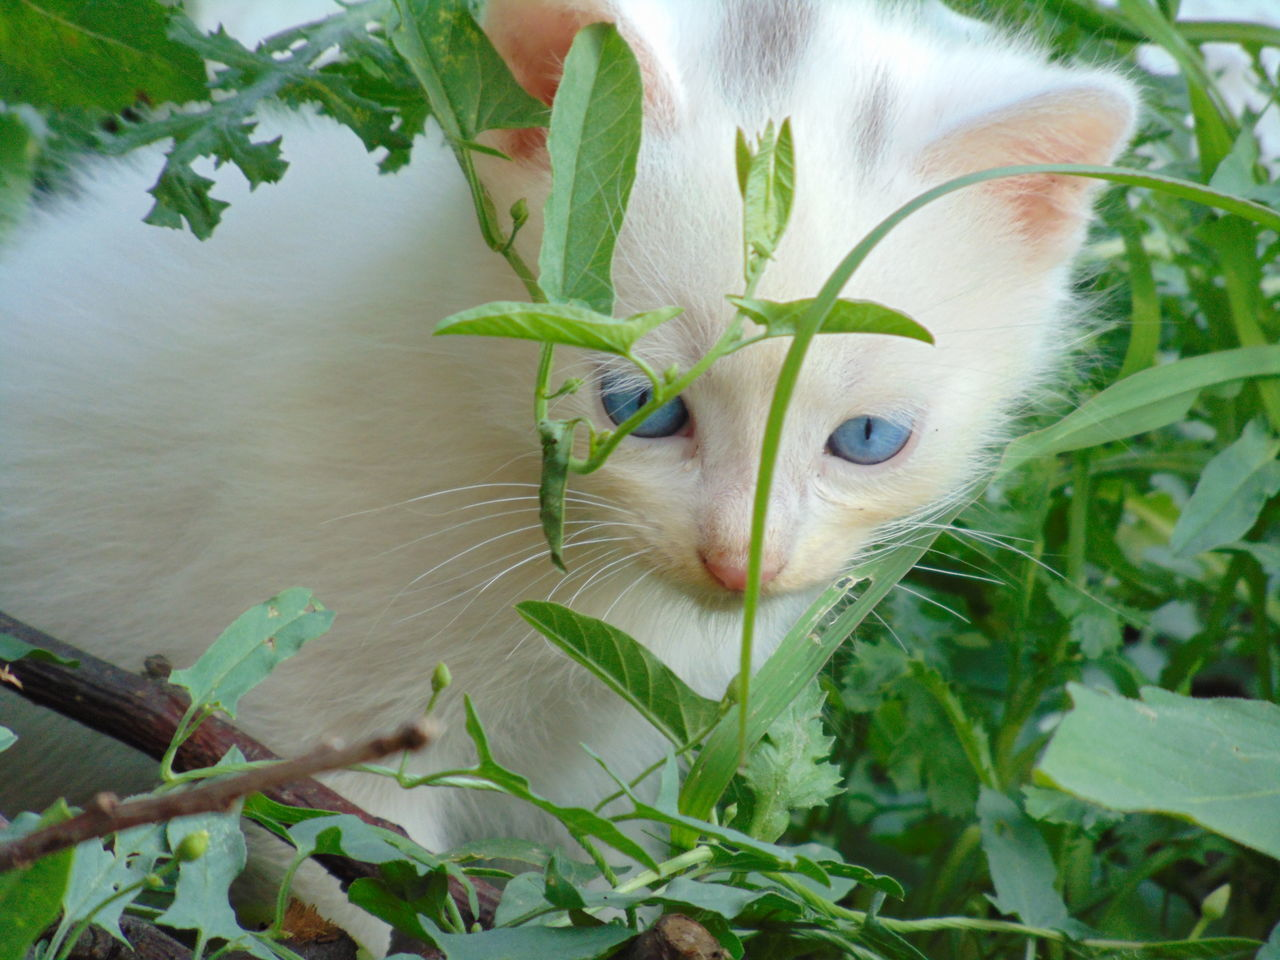 animal themes, pets, one animal, cat, mammal, domestic, feline, animal, domestic animals, plant, domestic cat, vertebrate, leaf, plant part, nature, close-up, growth, animal body part, green color, no people, outdoors, whisker, animal head, animal eye